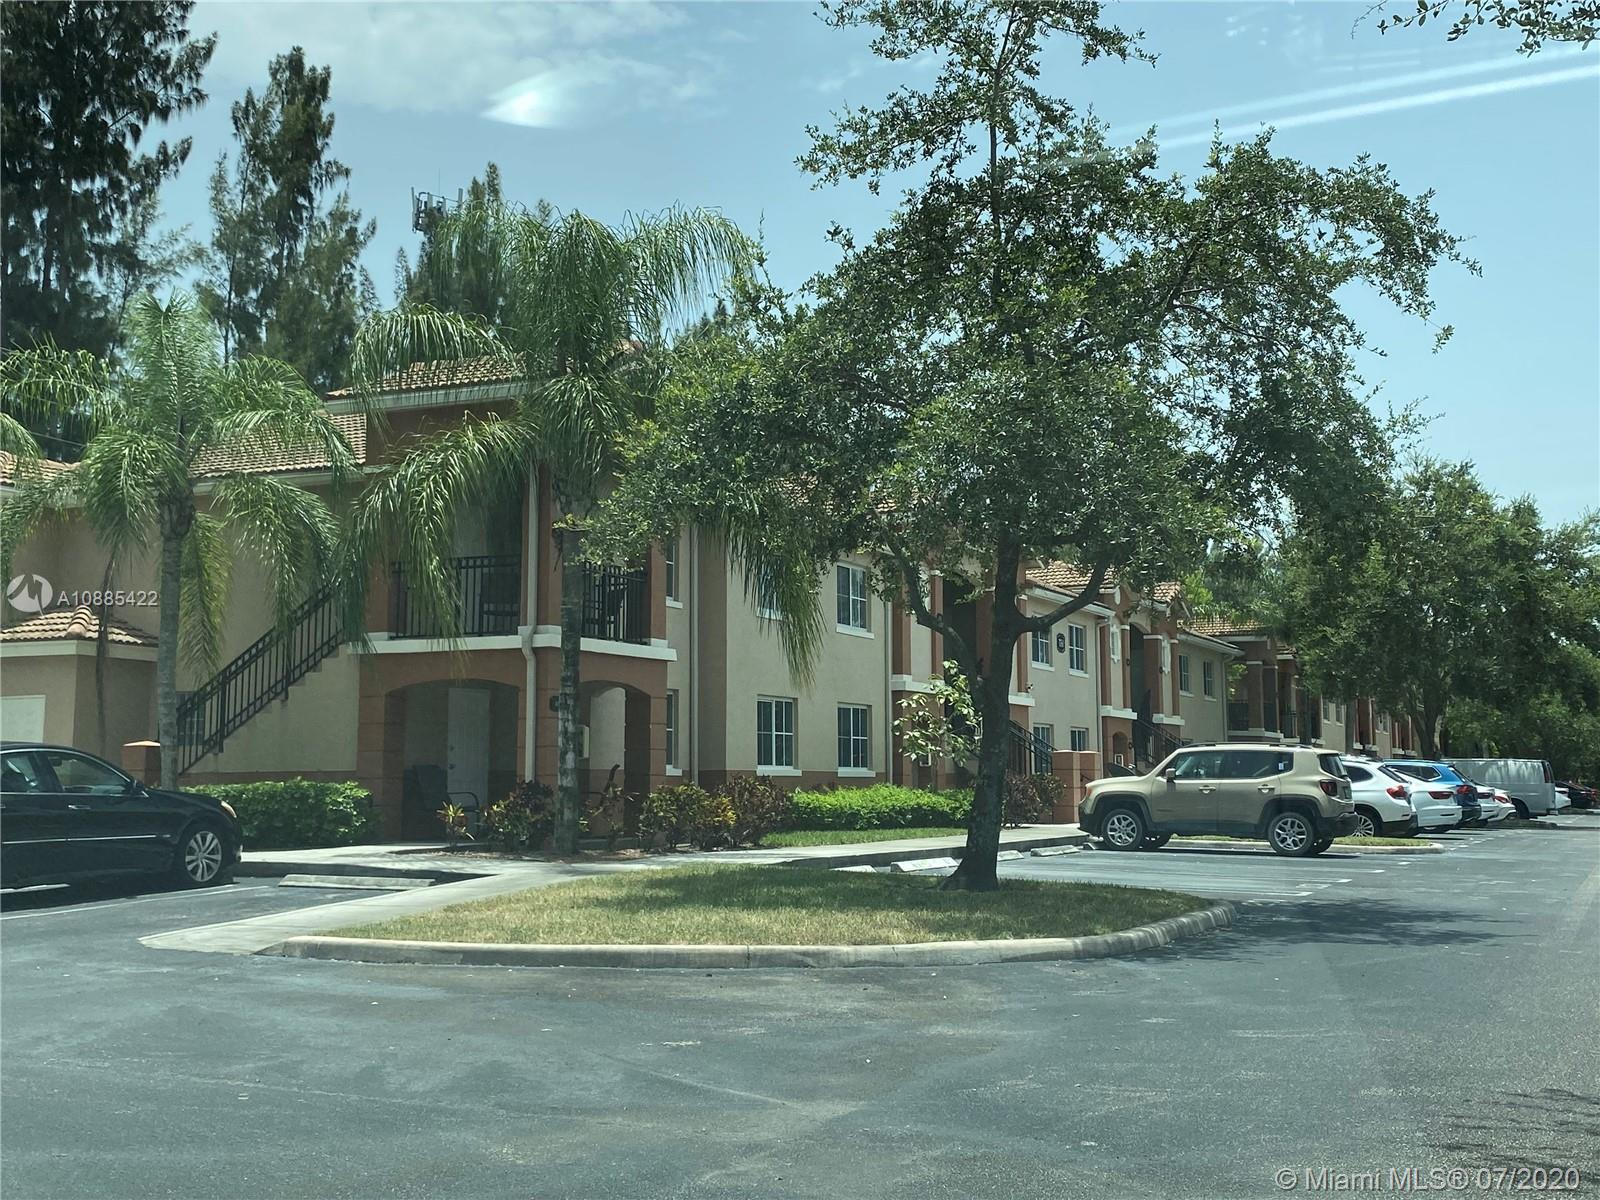 Listing A10885422 - Large Photo # 8